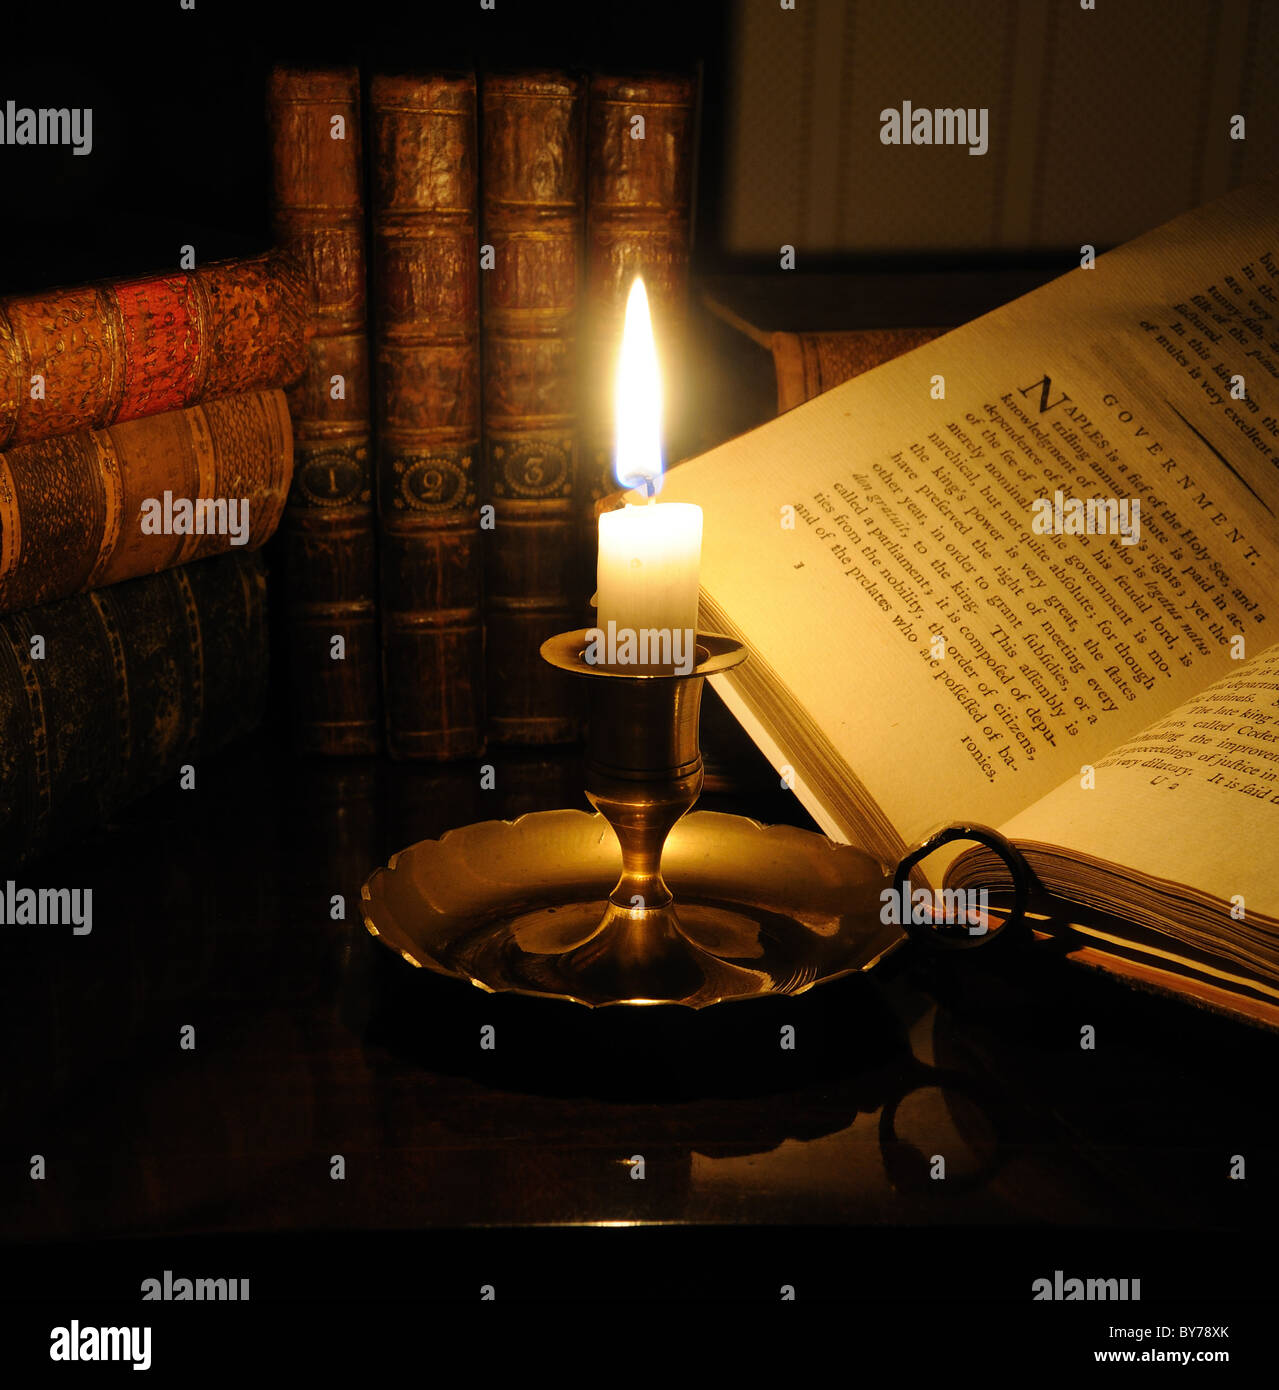 Antiquarian books lit by candlelight - Stock Image